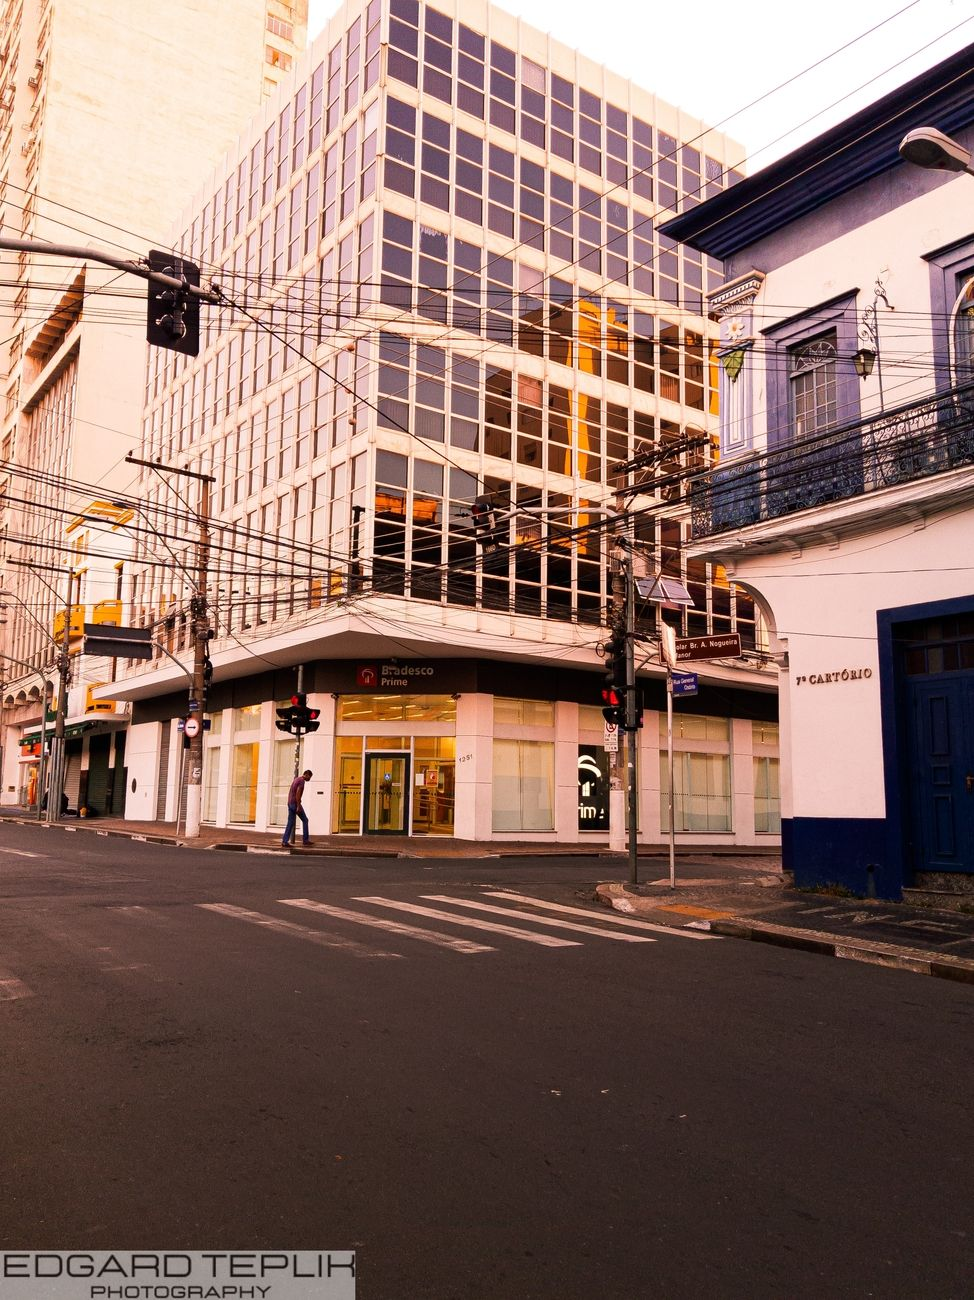 In this photo we have a beautiful contrast between a modern building with a large glass area and an old colonial style house in the center of Campinas